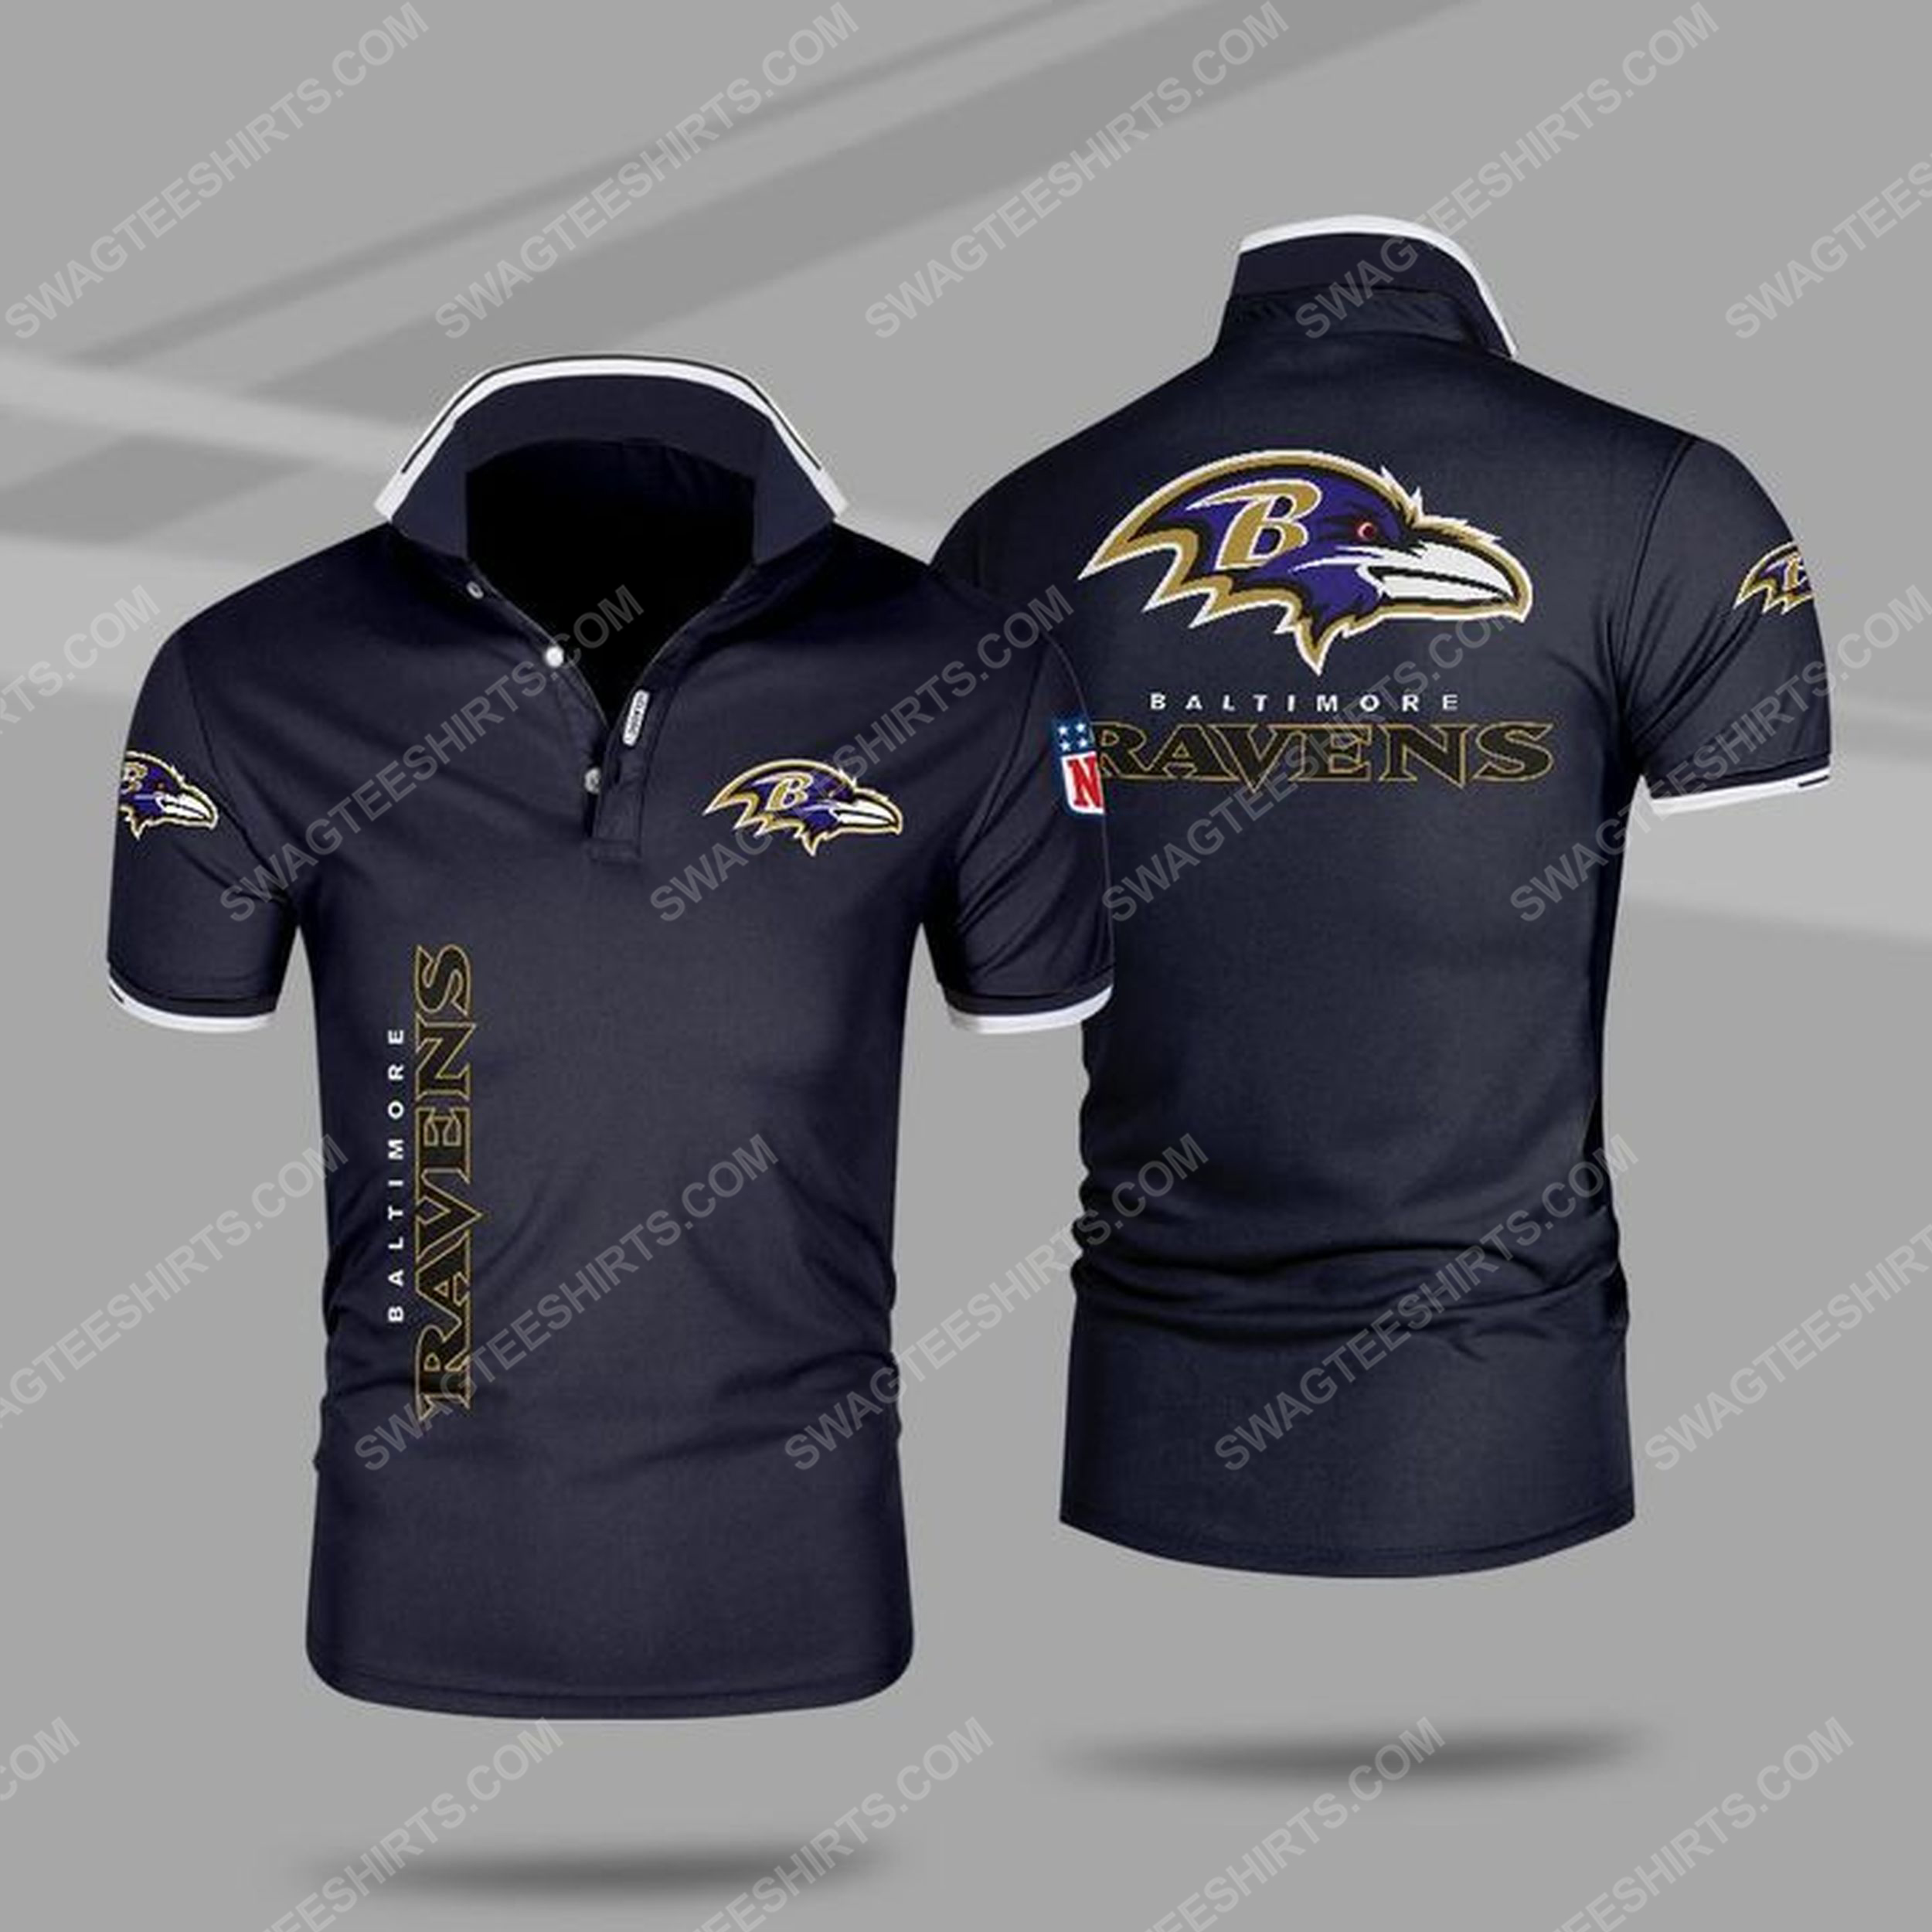 The baltimore ravens nfl all over print polo shirt - navy 1